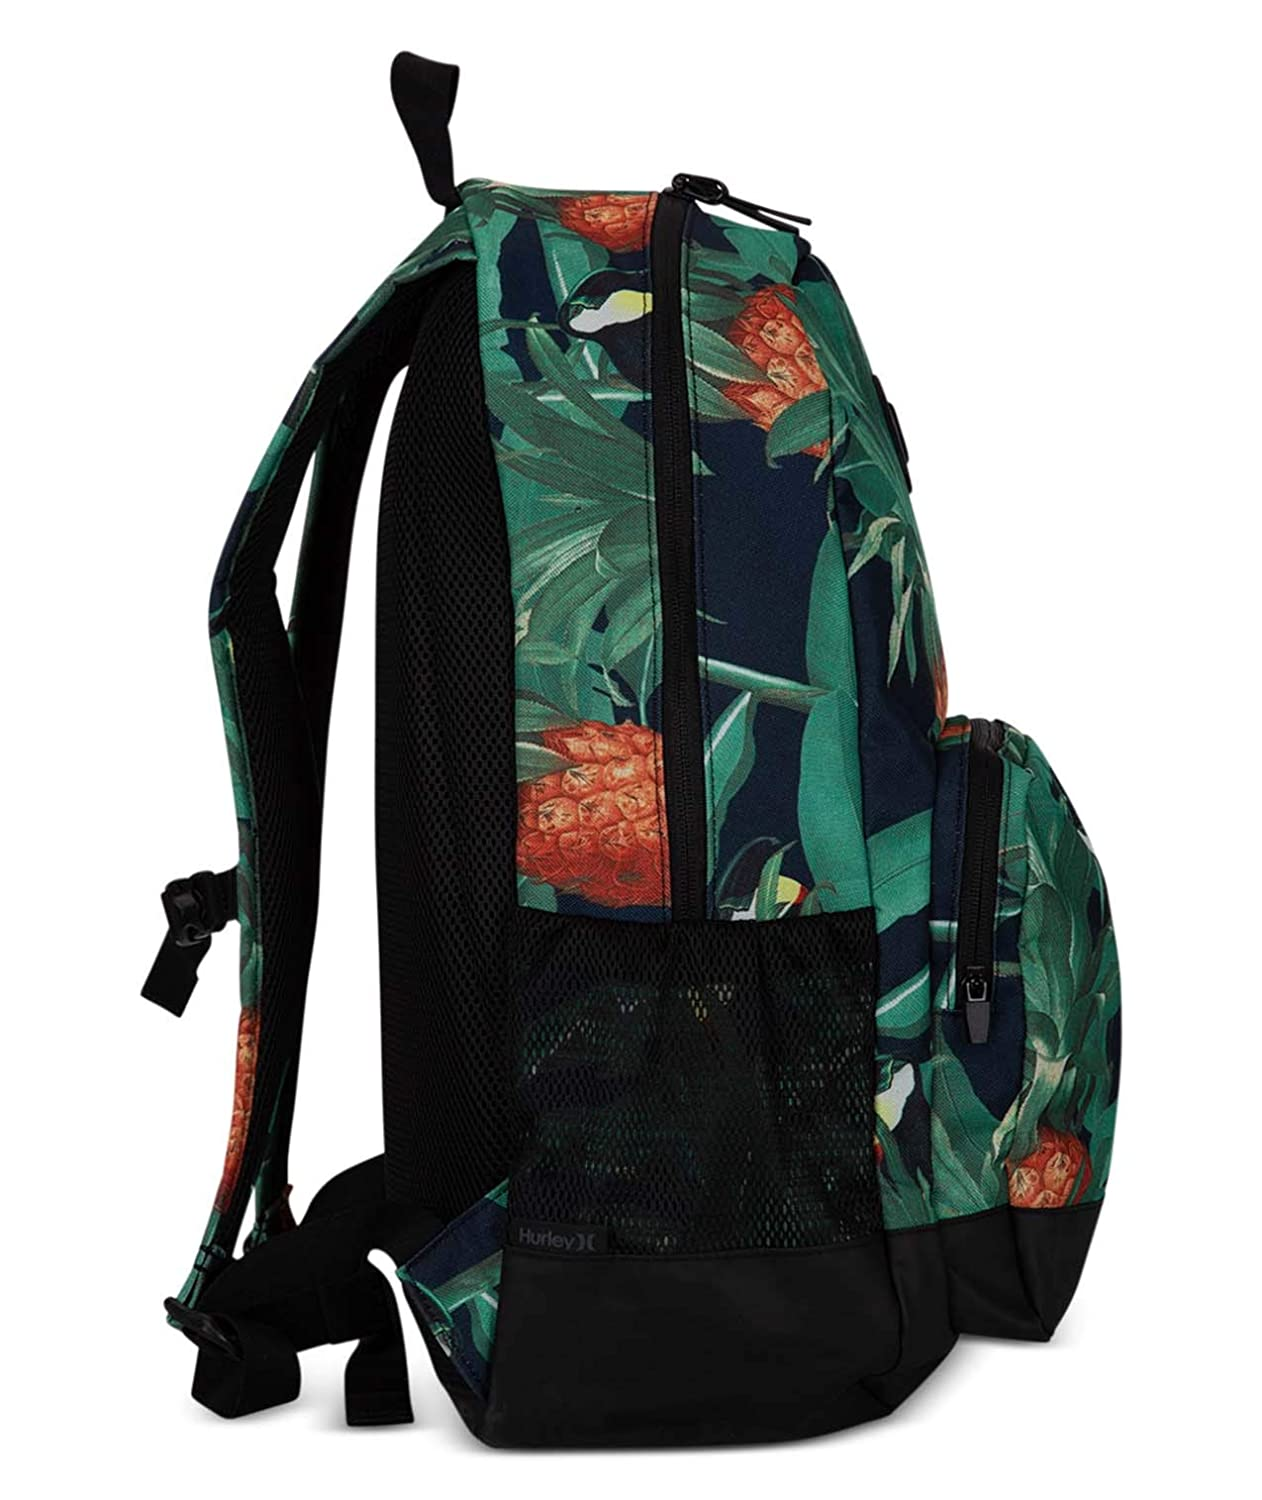 Hurley M Renegade II Costa Rica Backpack Mochilas, Hombre, Blue Force, 1SIZE: Amazon.es: Deportes y aire libre